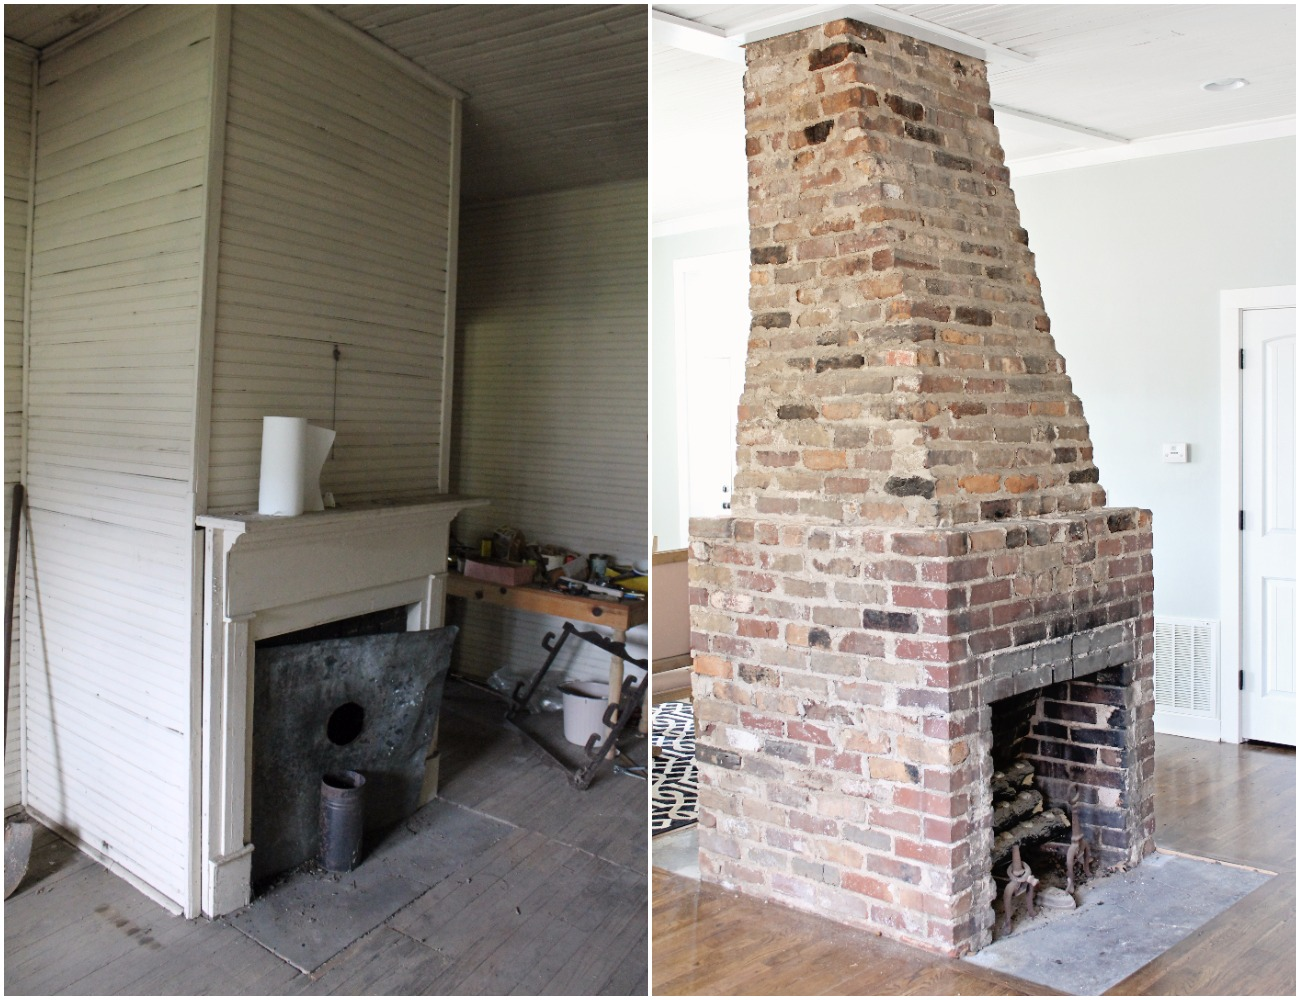 Elizabeth Burns Design | Old farmhouse fixer upper kitchen renovation - exposed brick fireplace before and after